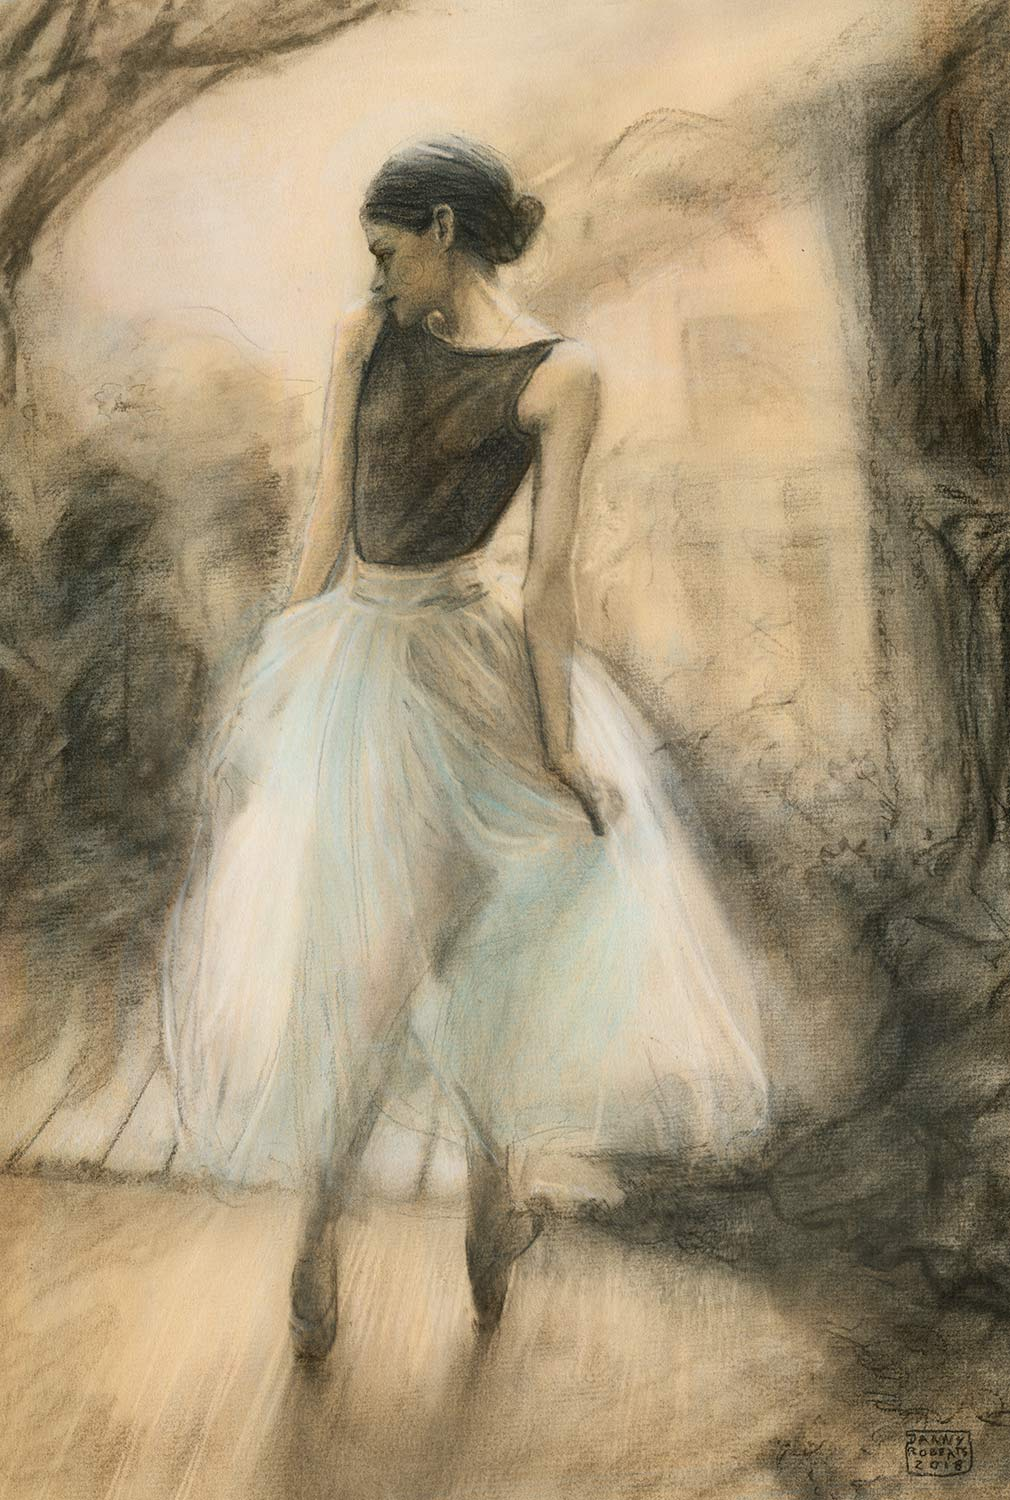 Artist Danny roberts charcoal sketch of Ballerina Cate Hurlin photo by Katie Rodgers